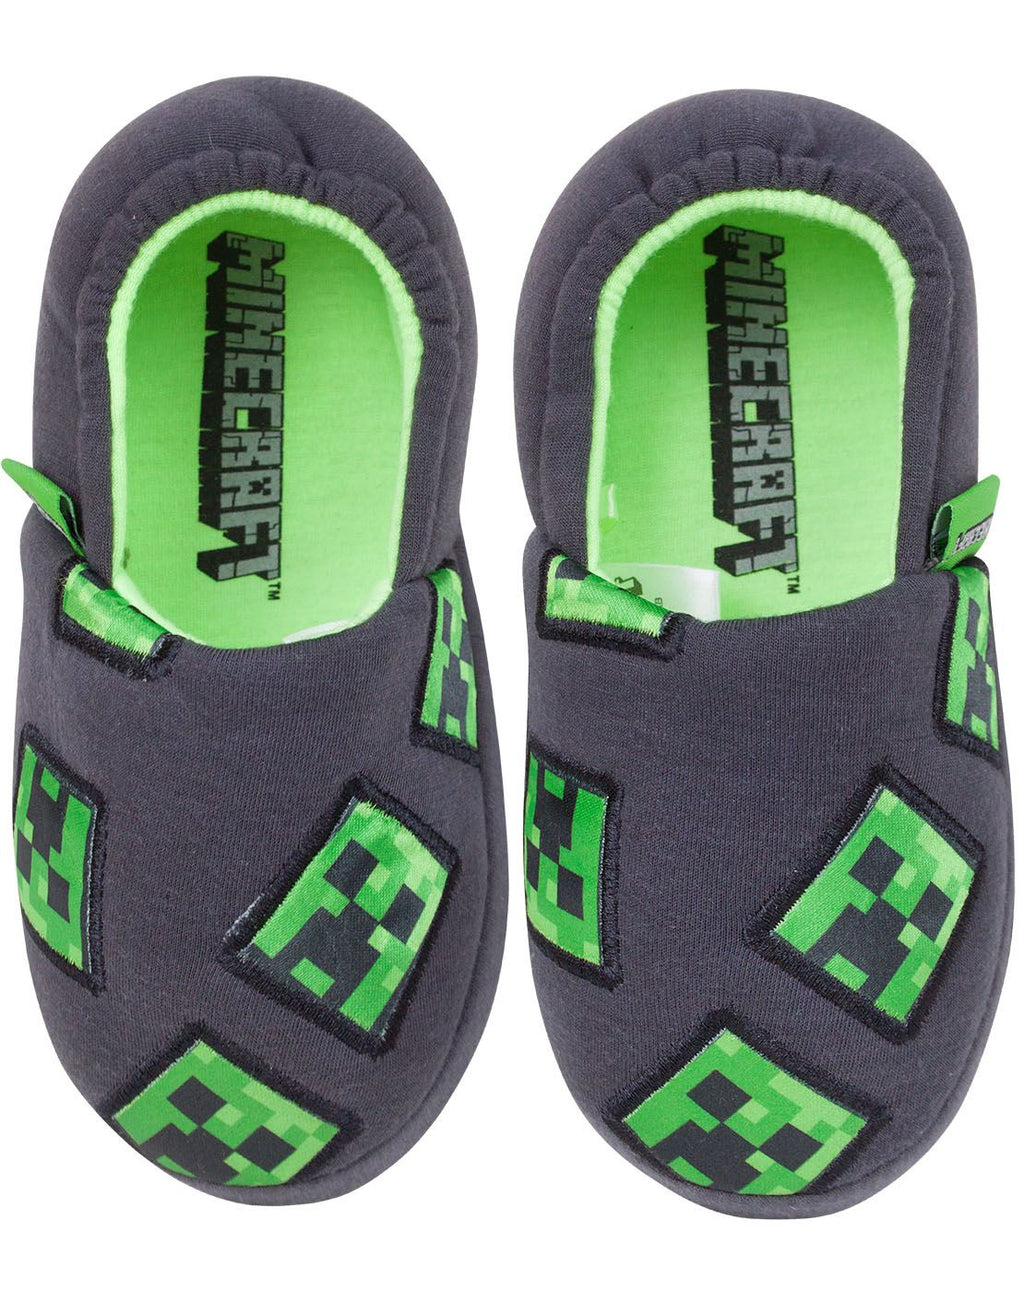 Minecraft Creeper Boy's Slippers